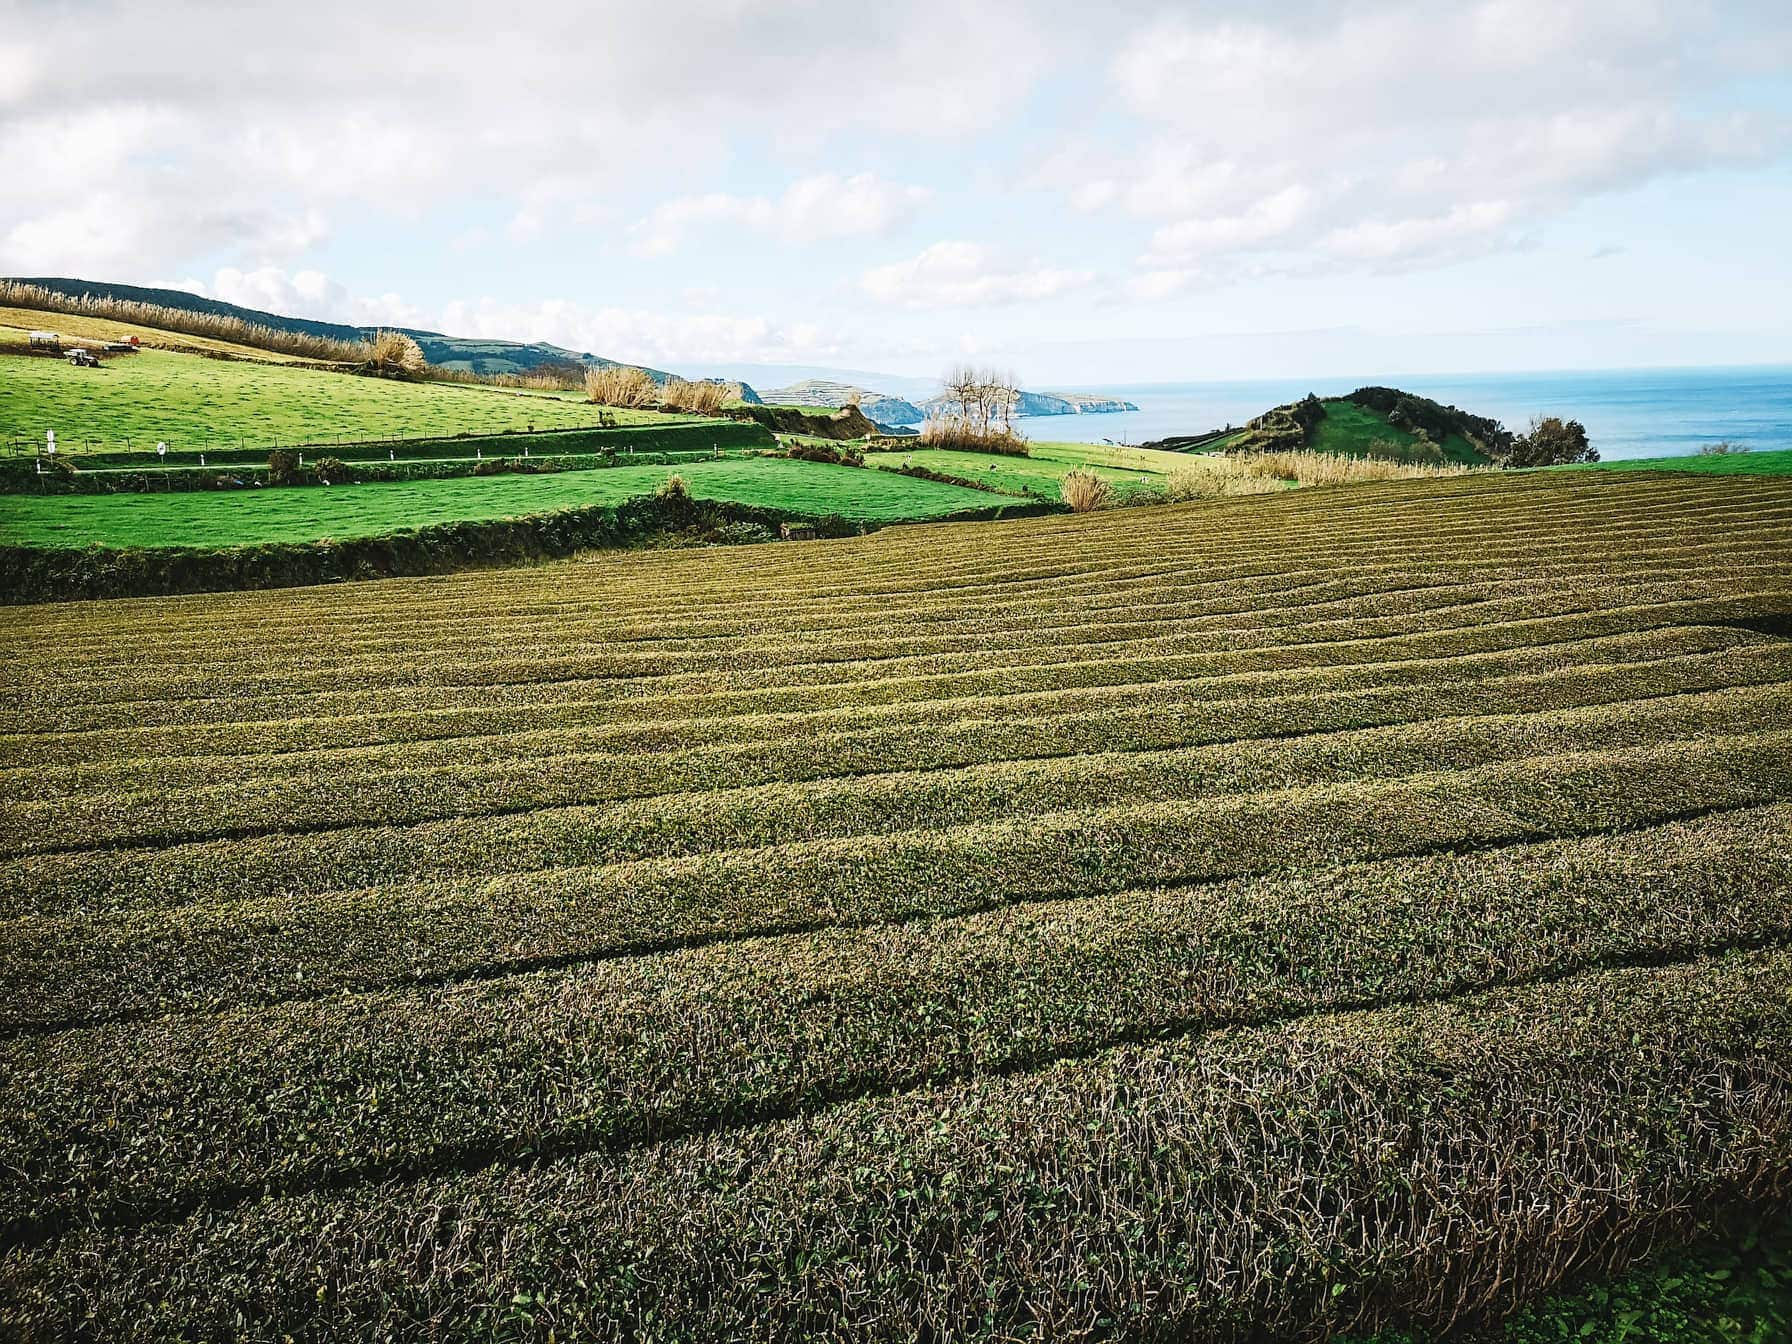 20 Unmissable Things To Do On São Miguel Island, Azores - Sao Miguel Tea Plantation